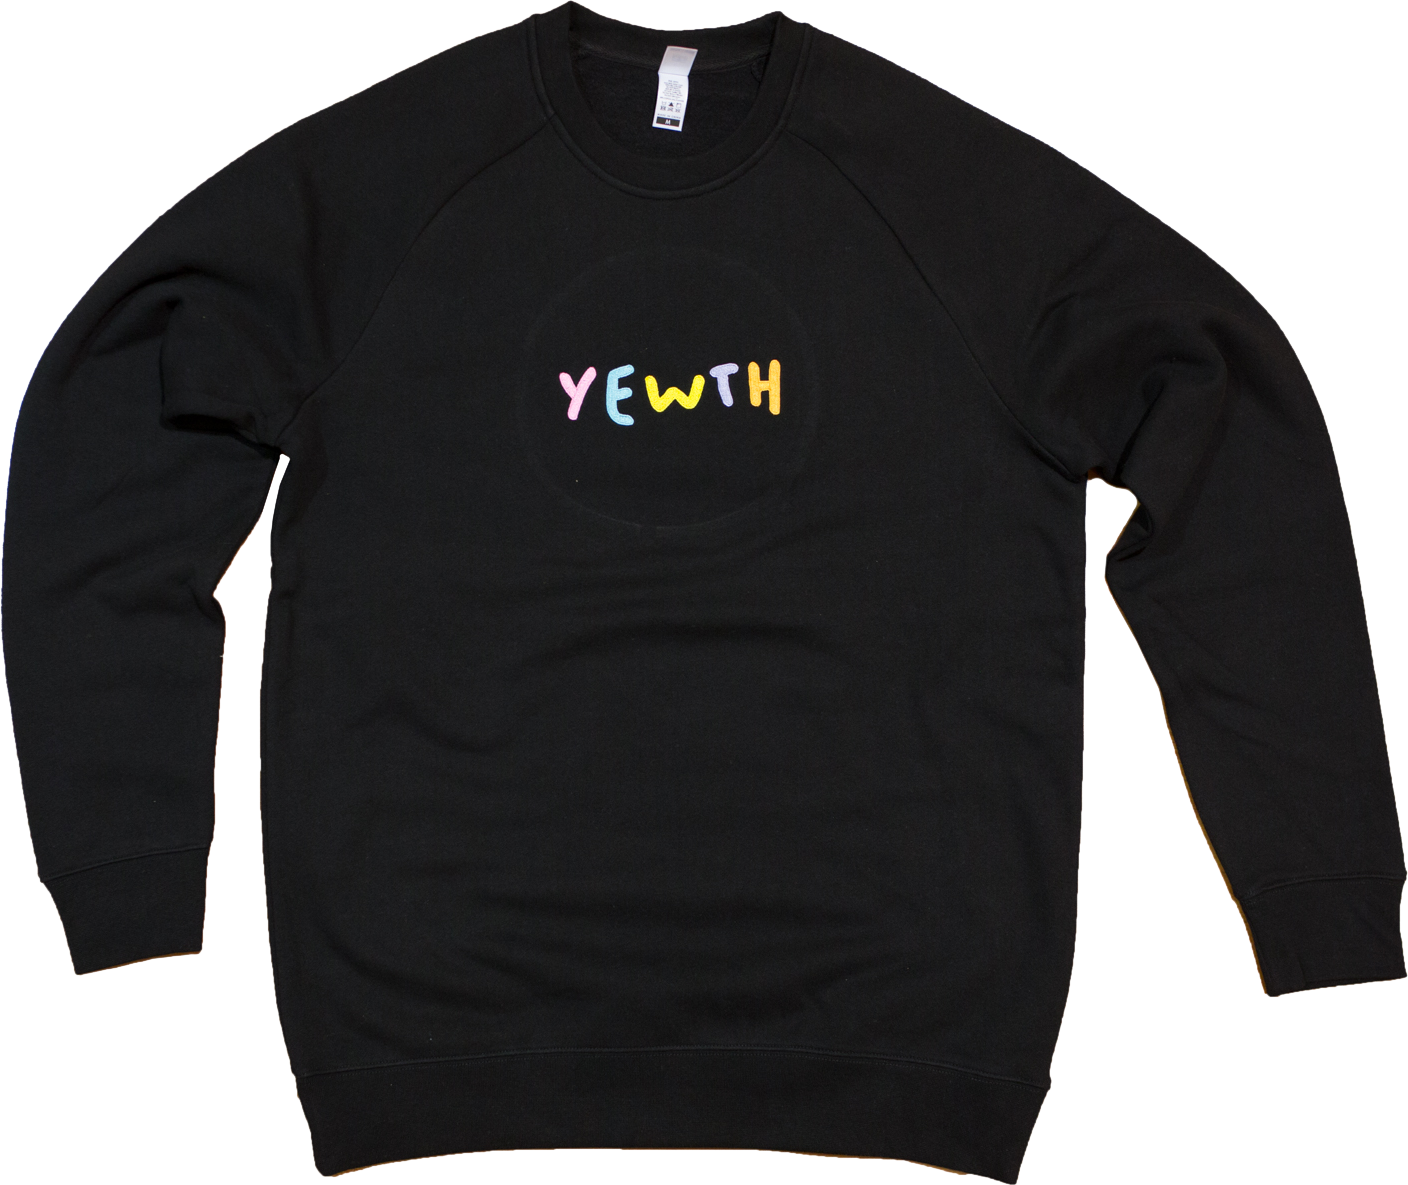 yewth jumpers (1 of 4).png